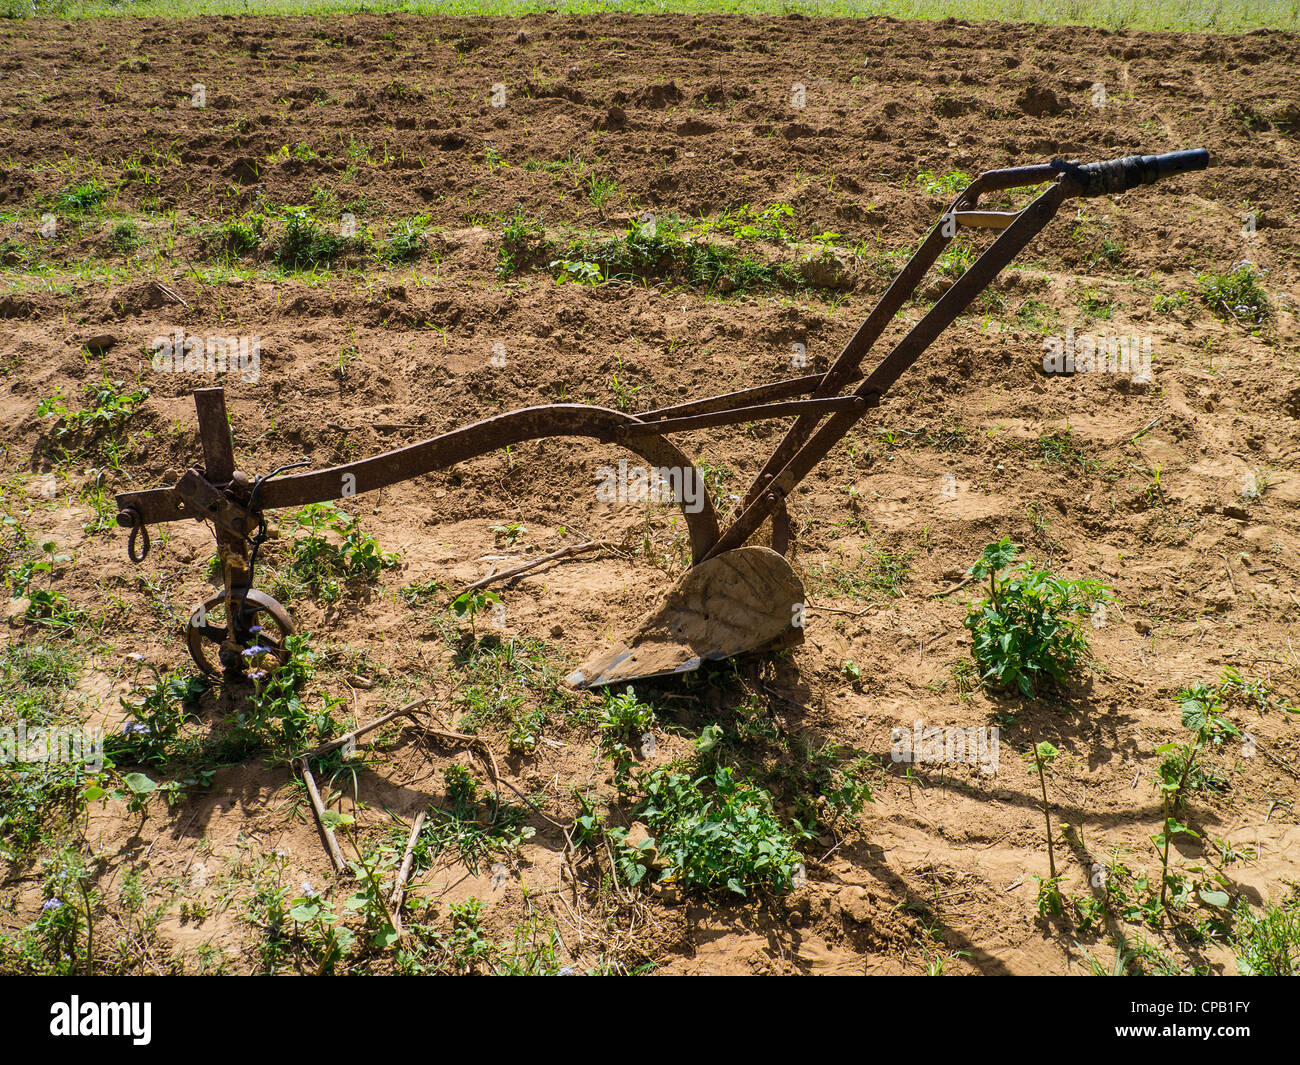 A primitive horse or ox drawn plow sits in a barren tobacco field in Viñales, Cuba. - Stock Image